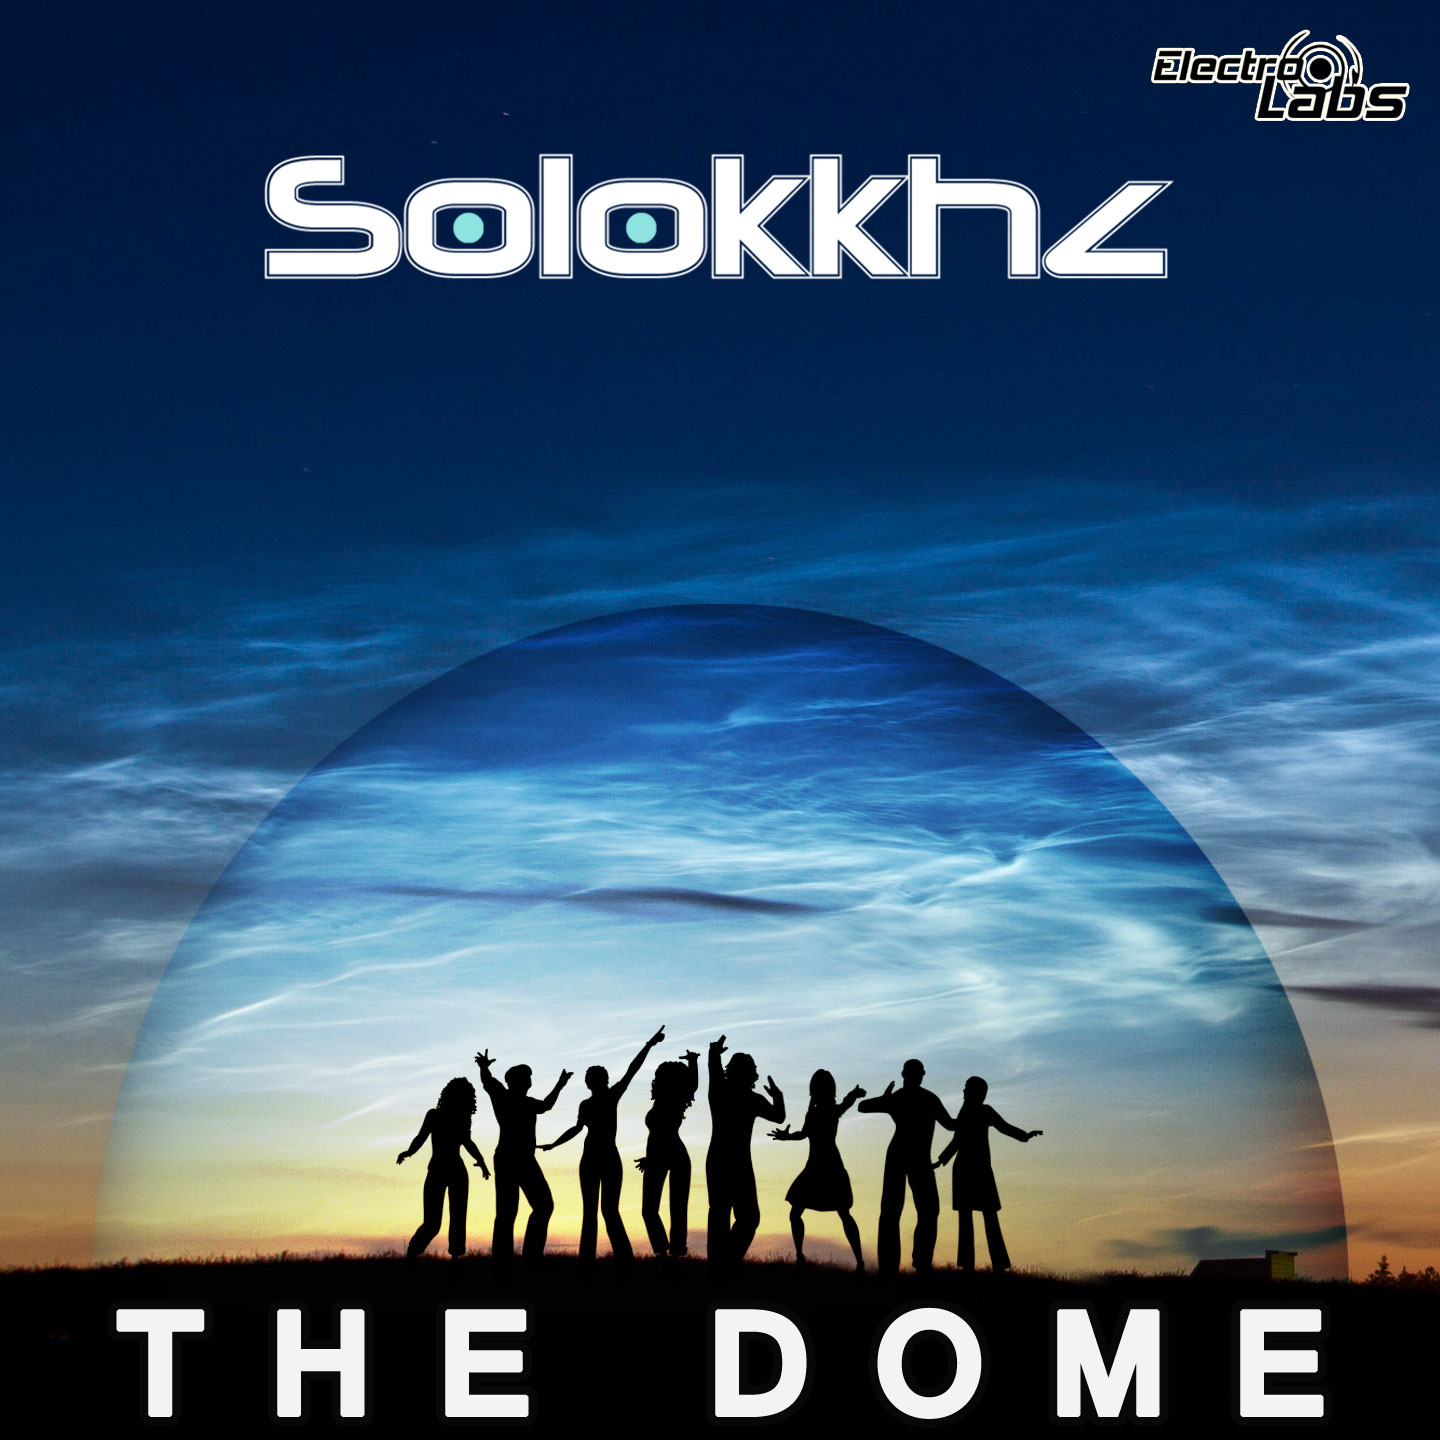 Solokkhz - The Dome EP